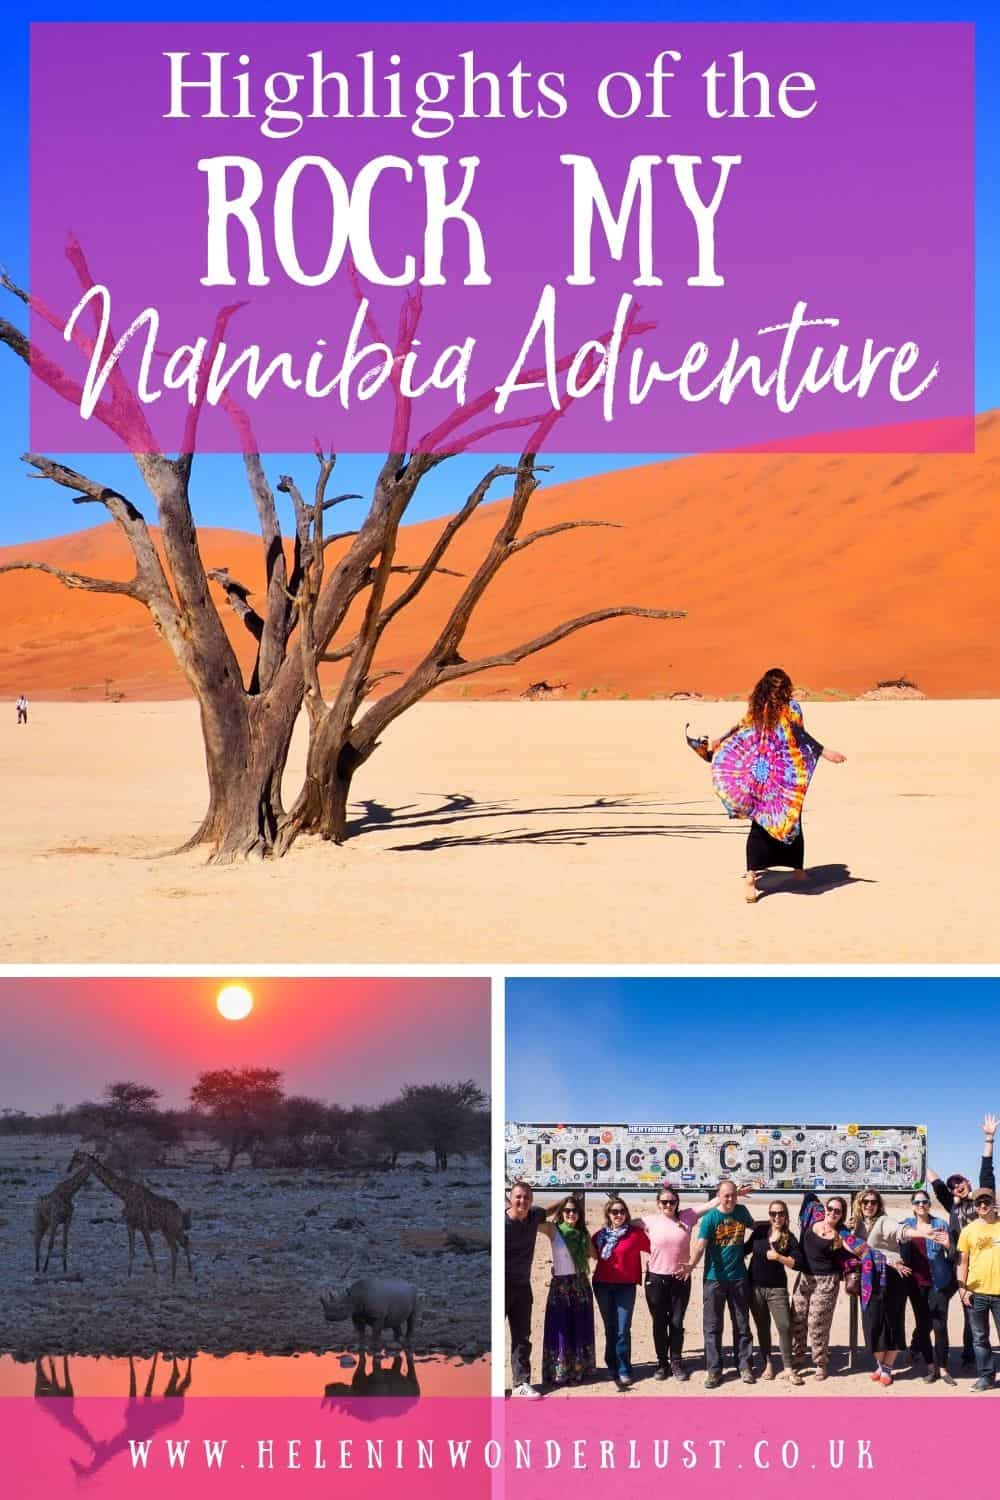 Highlights of the Rock My Namibia Adventure